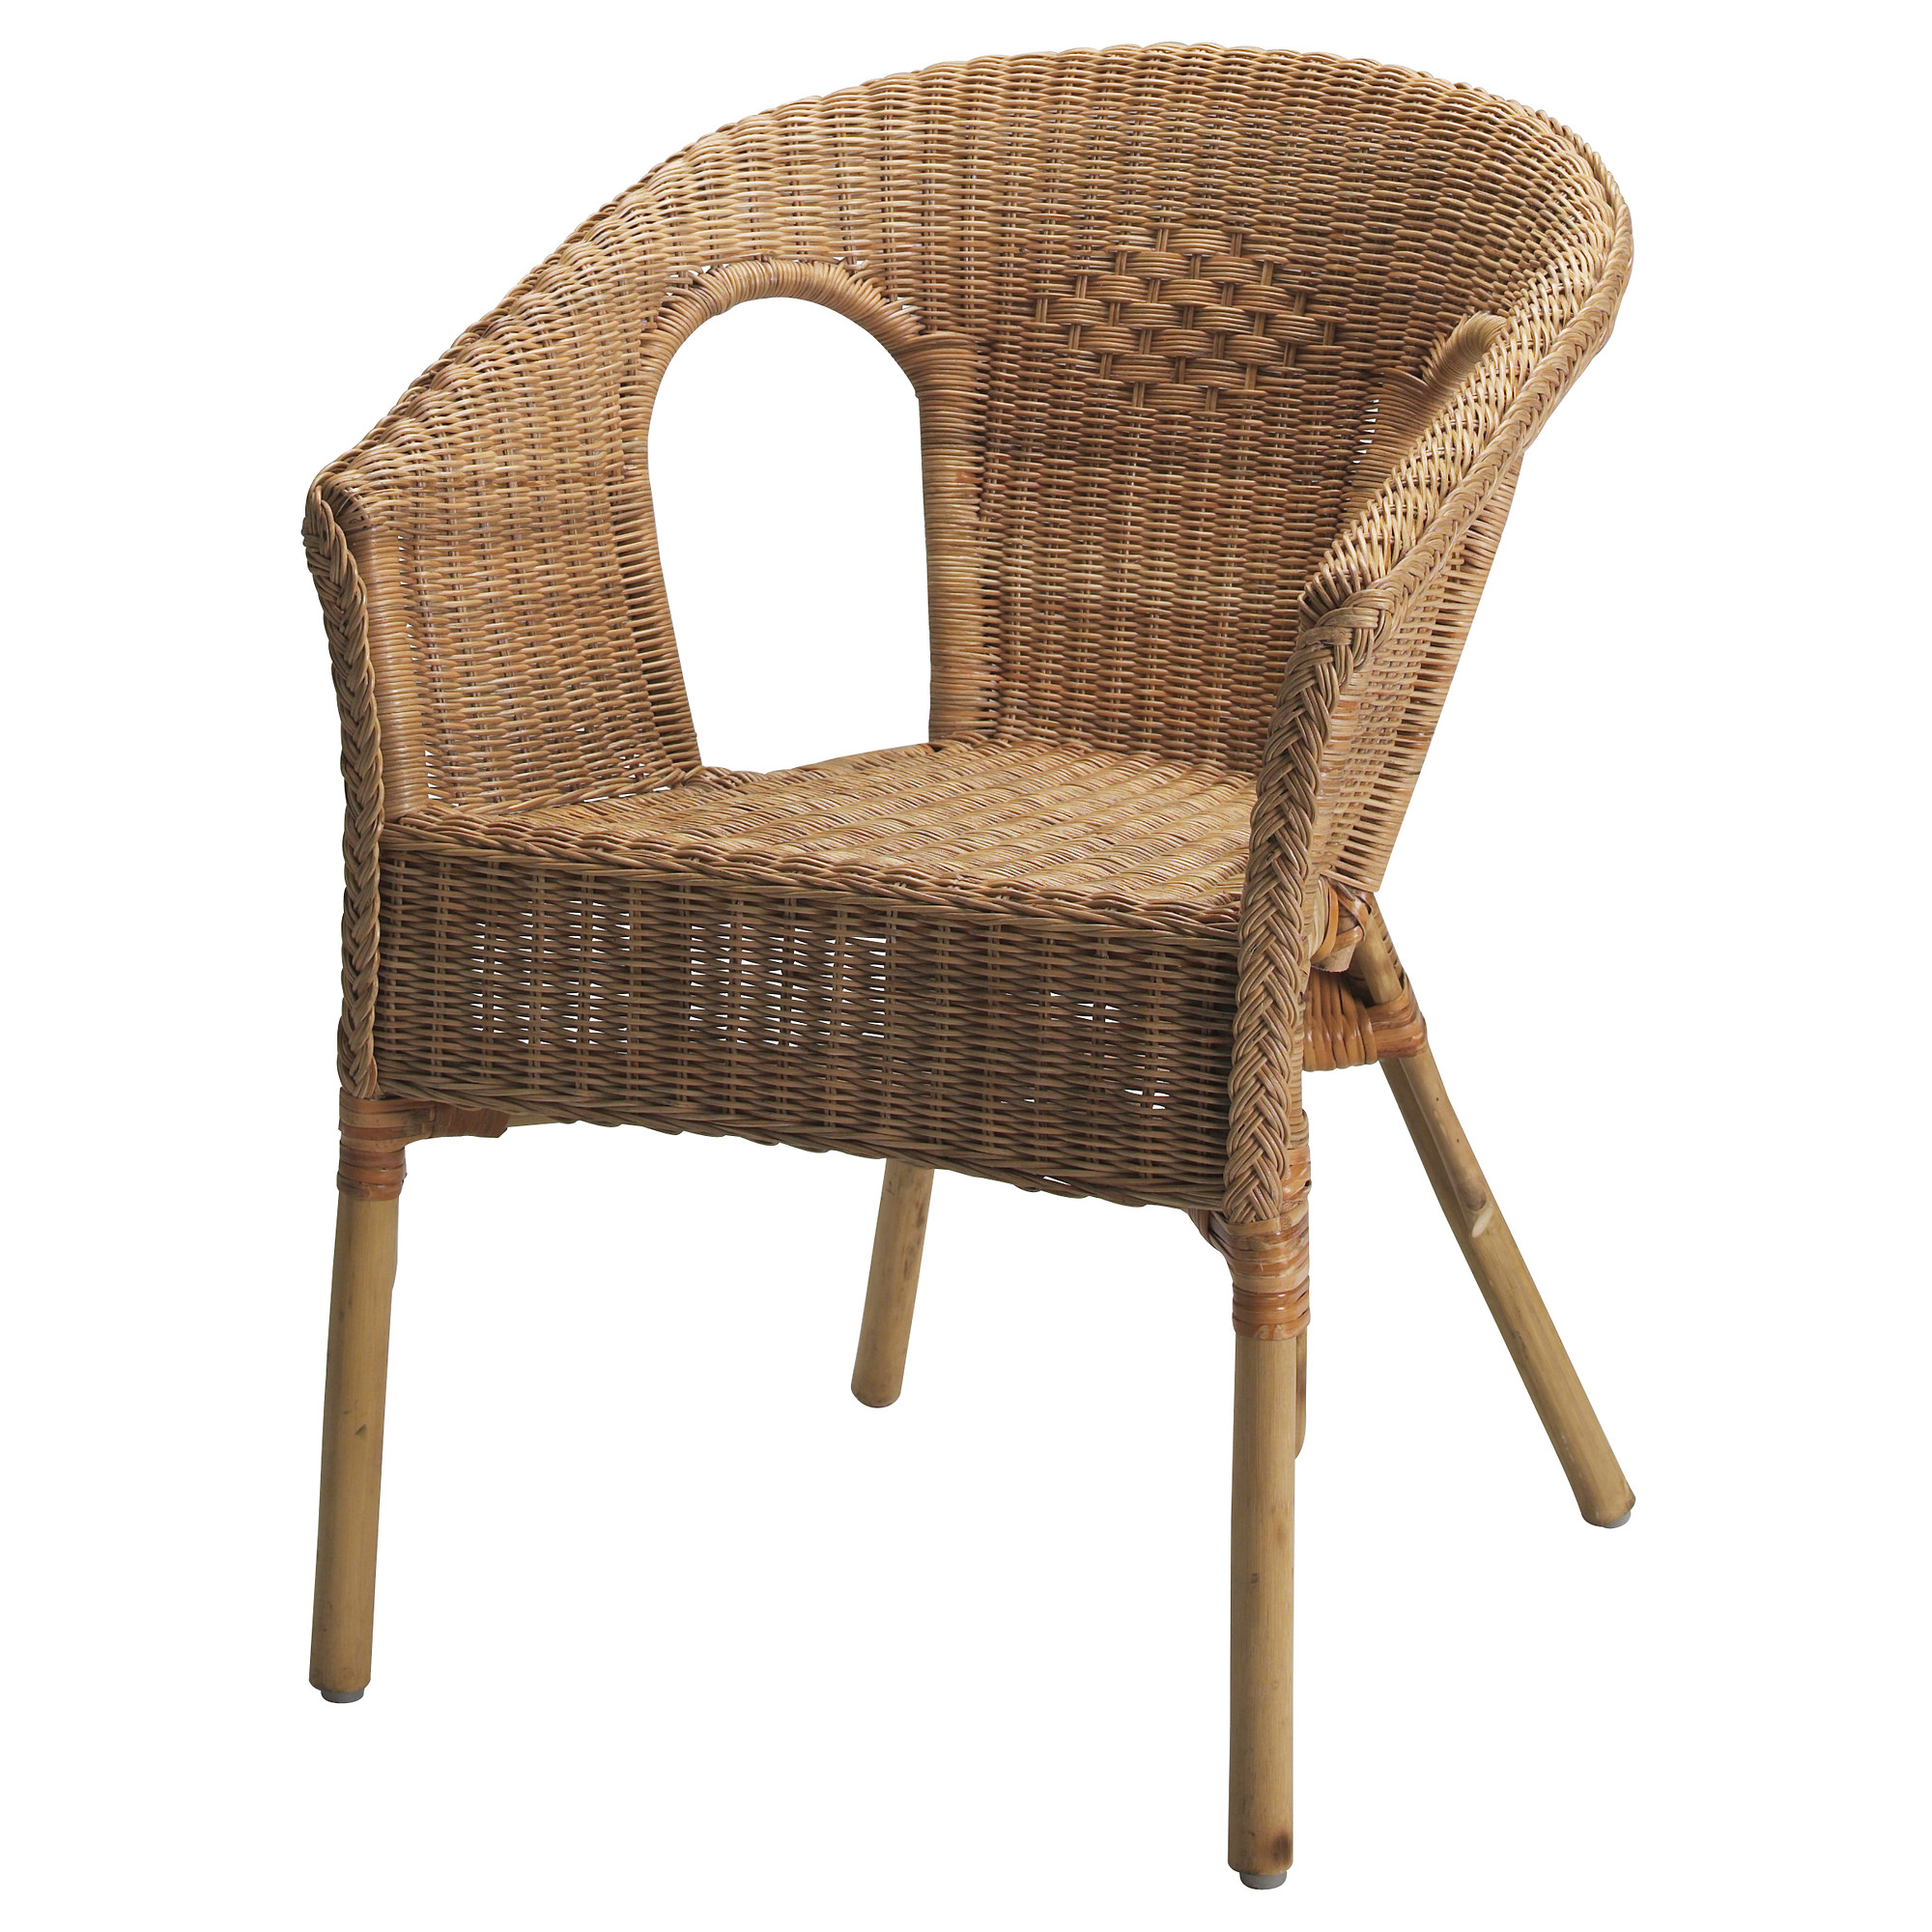 Furniture Unique Rattan Chair For Indoor Or Outdoor